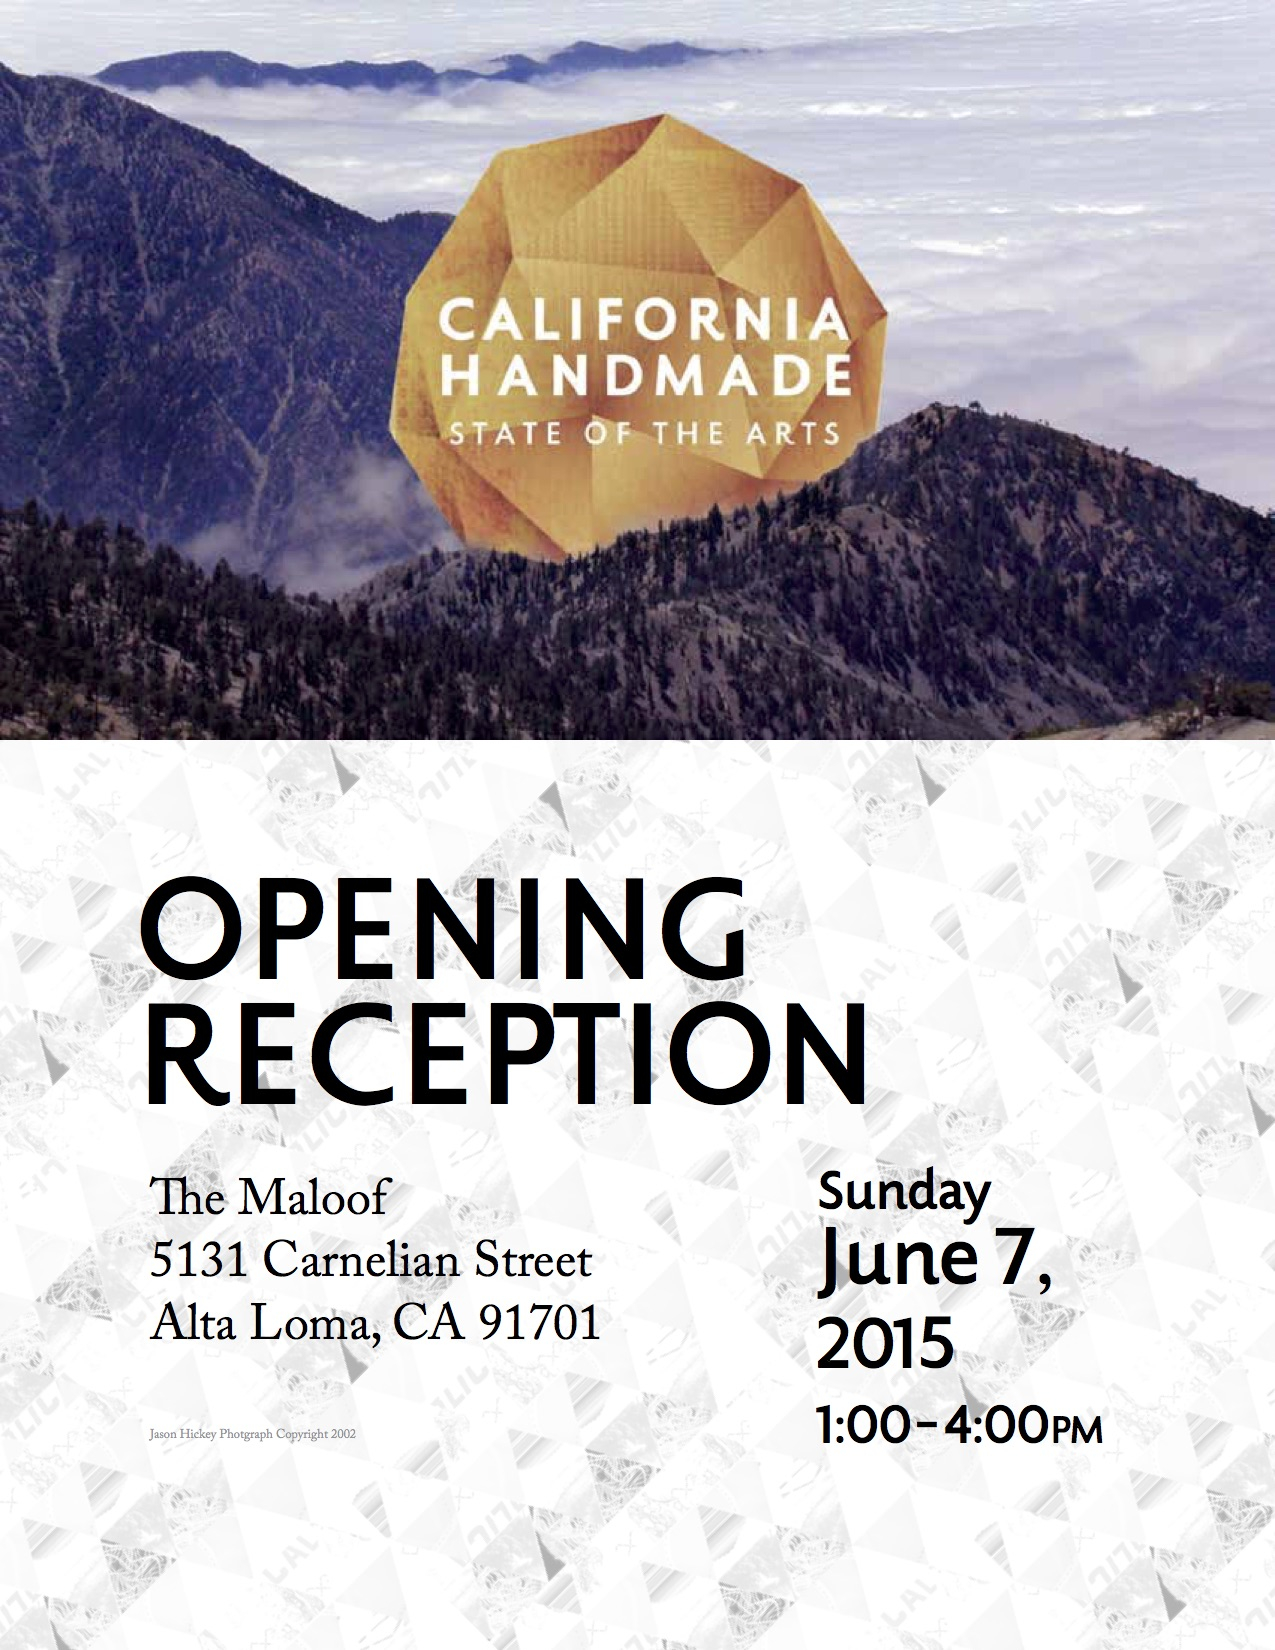 Killscrow: participating artist in California Handmade: State of the Arts at the Maloof Foundation